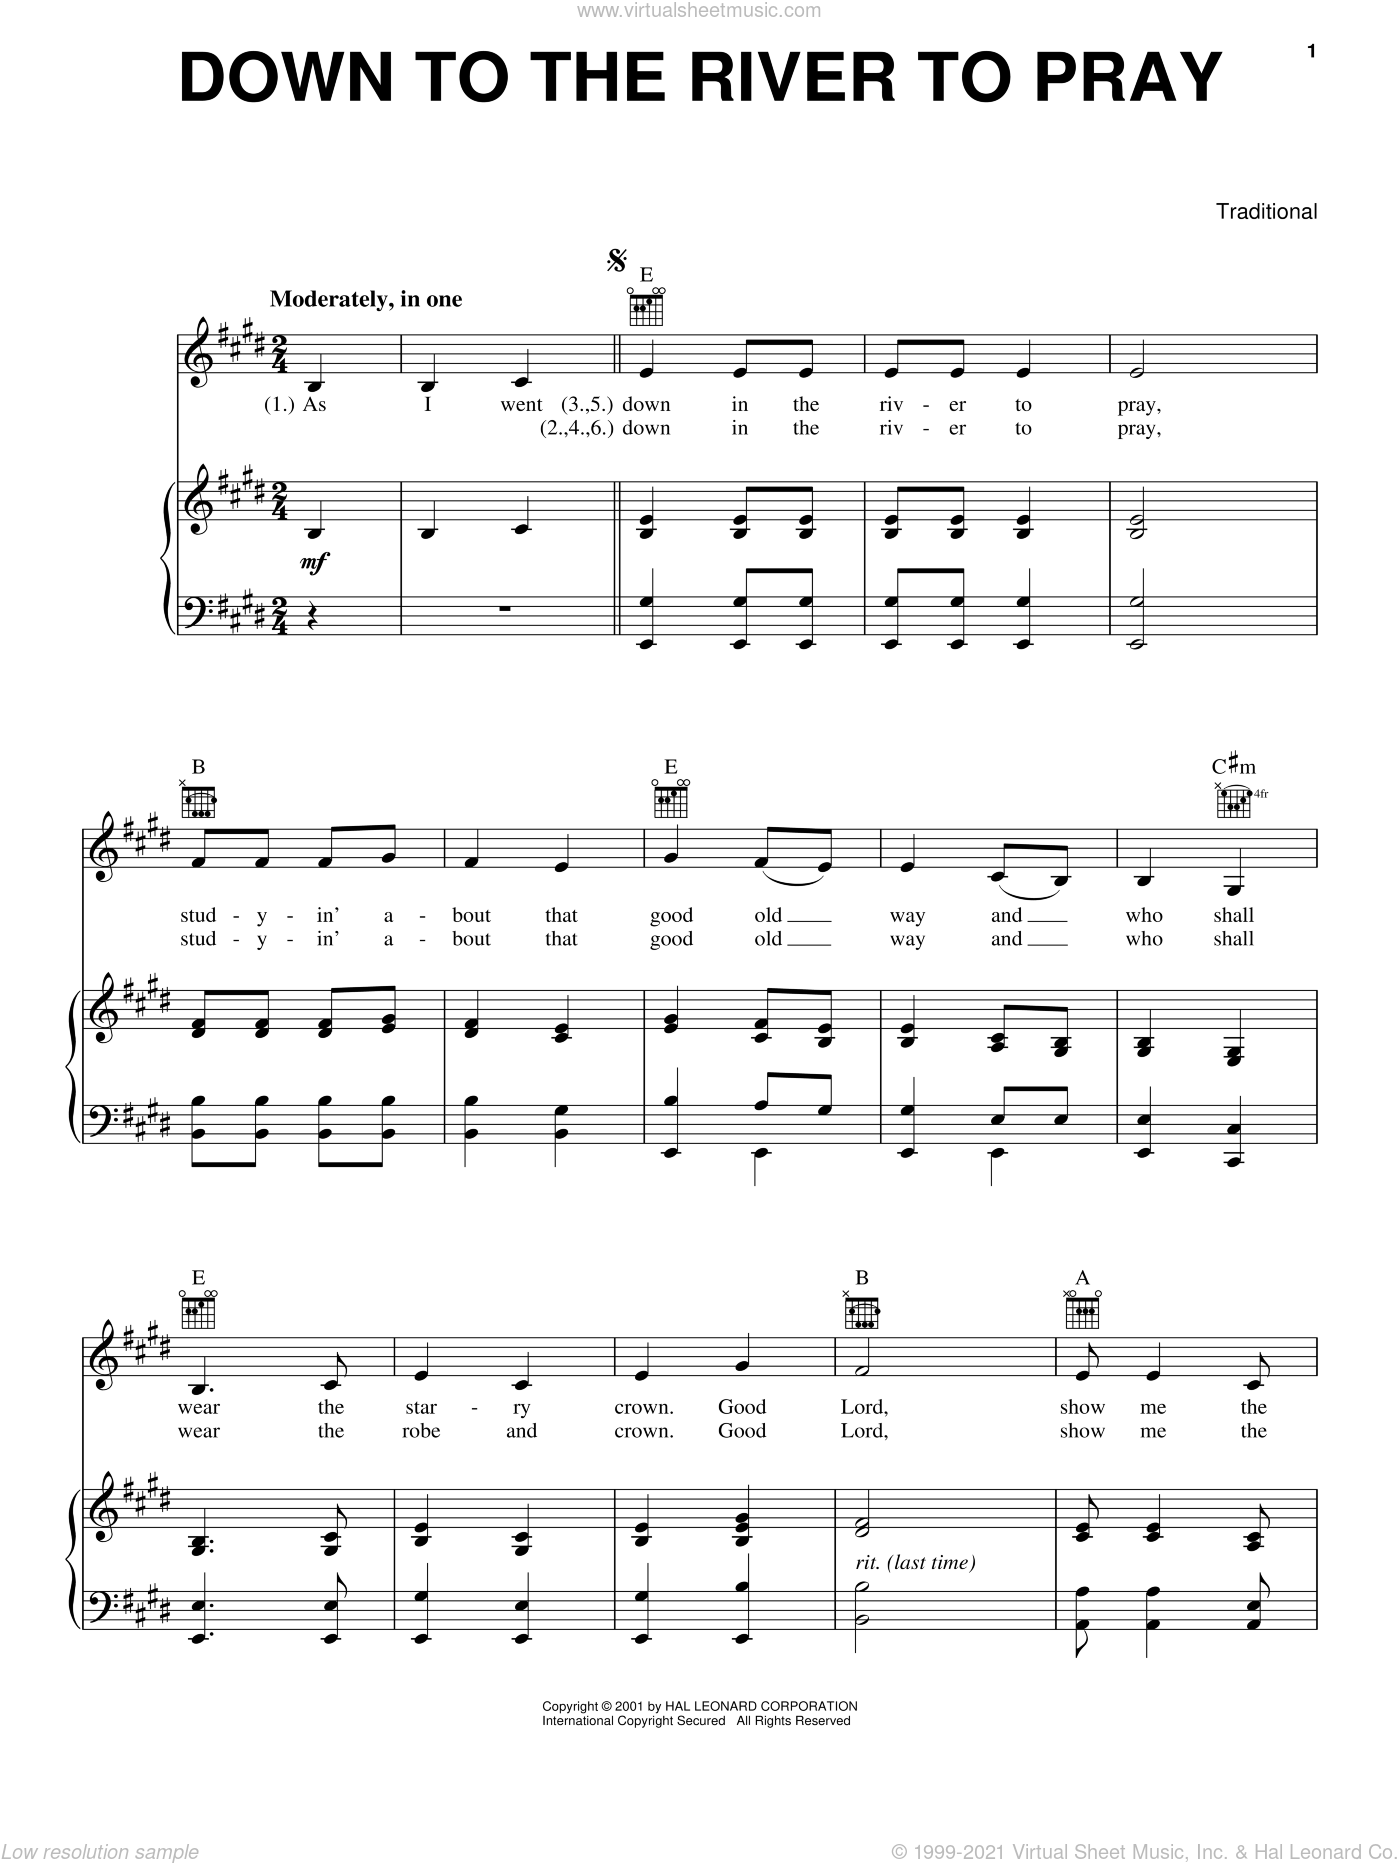 Down To The River To Pray sheet music for voice, piano or guitar. Score Image Preview.